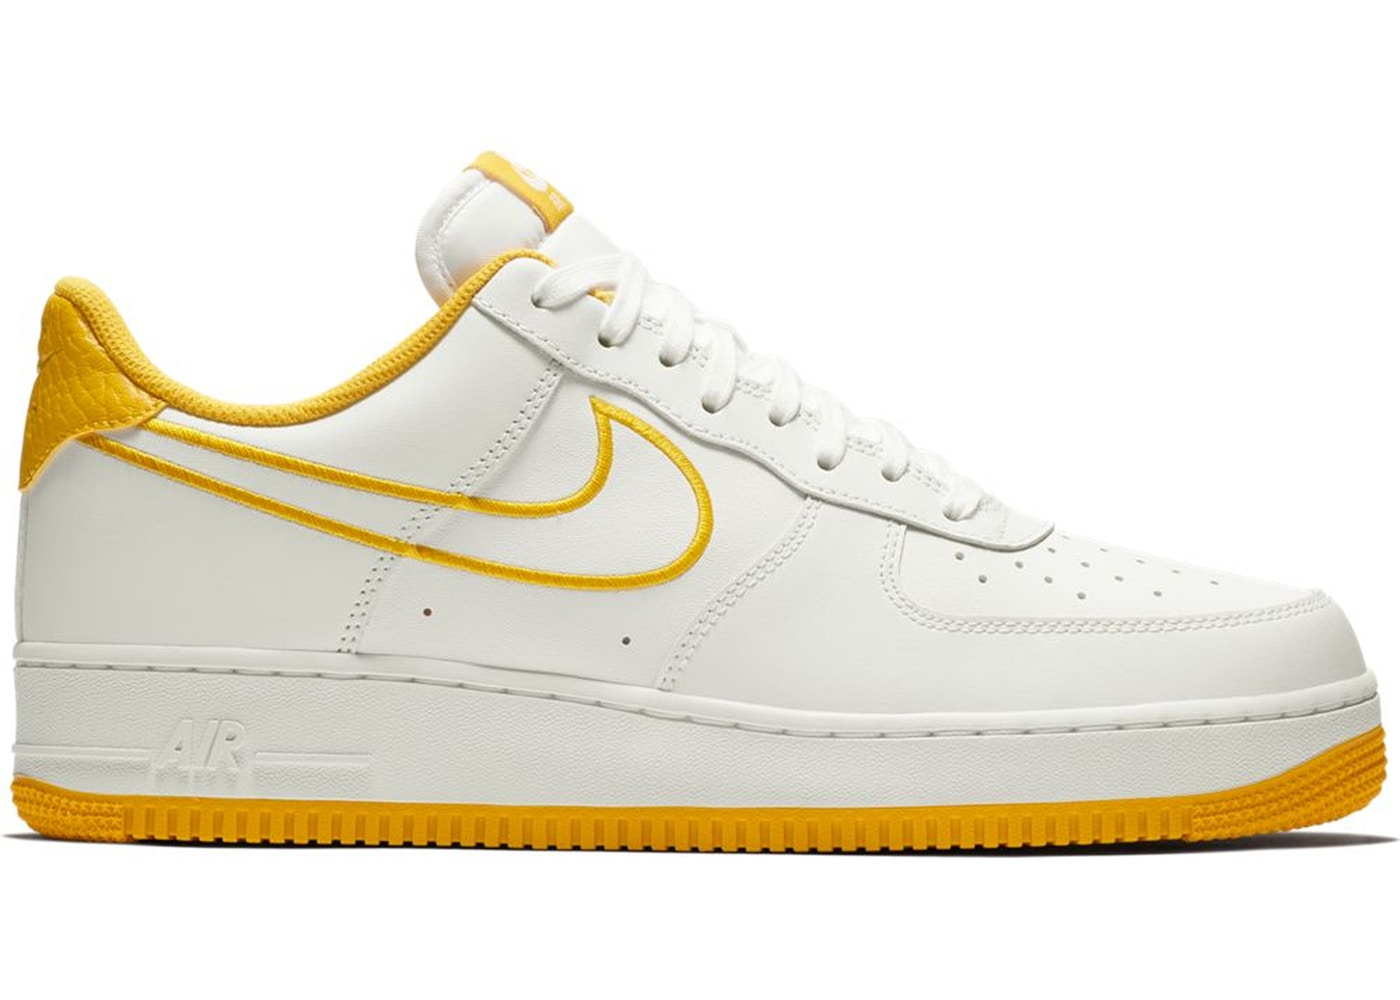 Viajero Álbum de graduación Capitán Brie  Nike Air Force 1 Low White Yellow Ochre - AJ7280-101